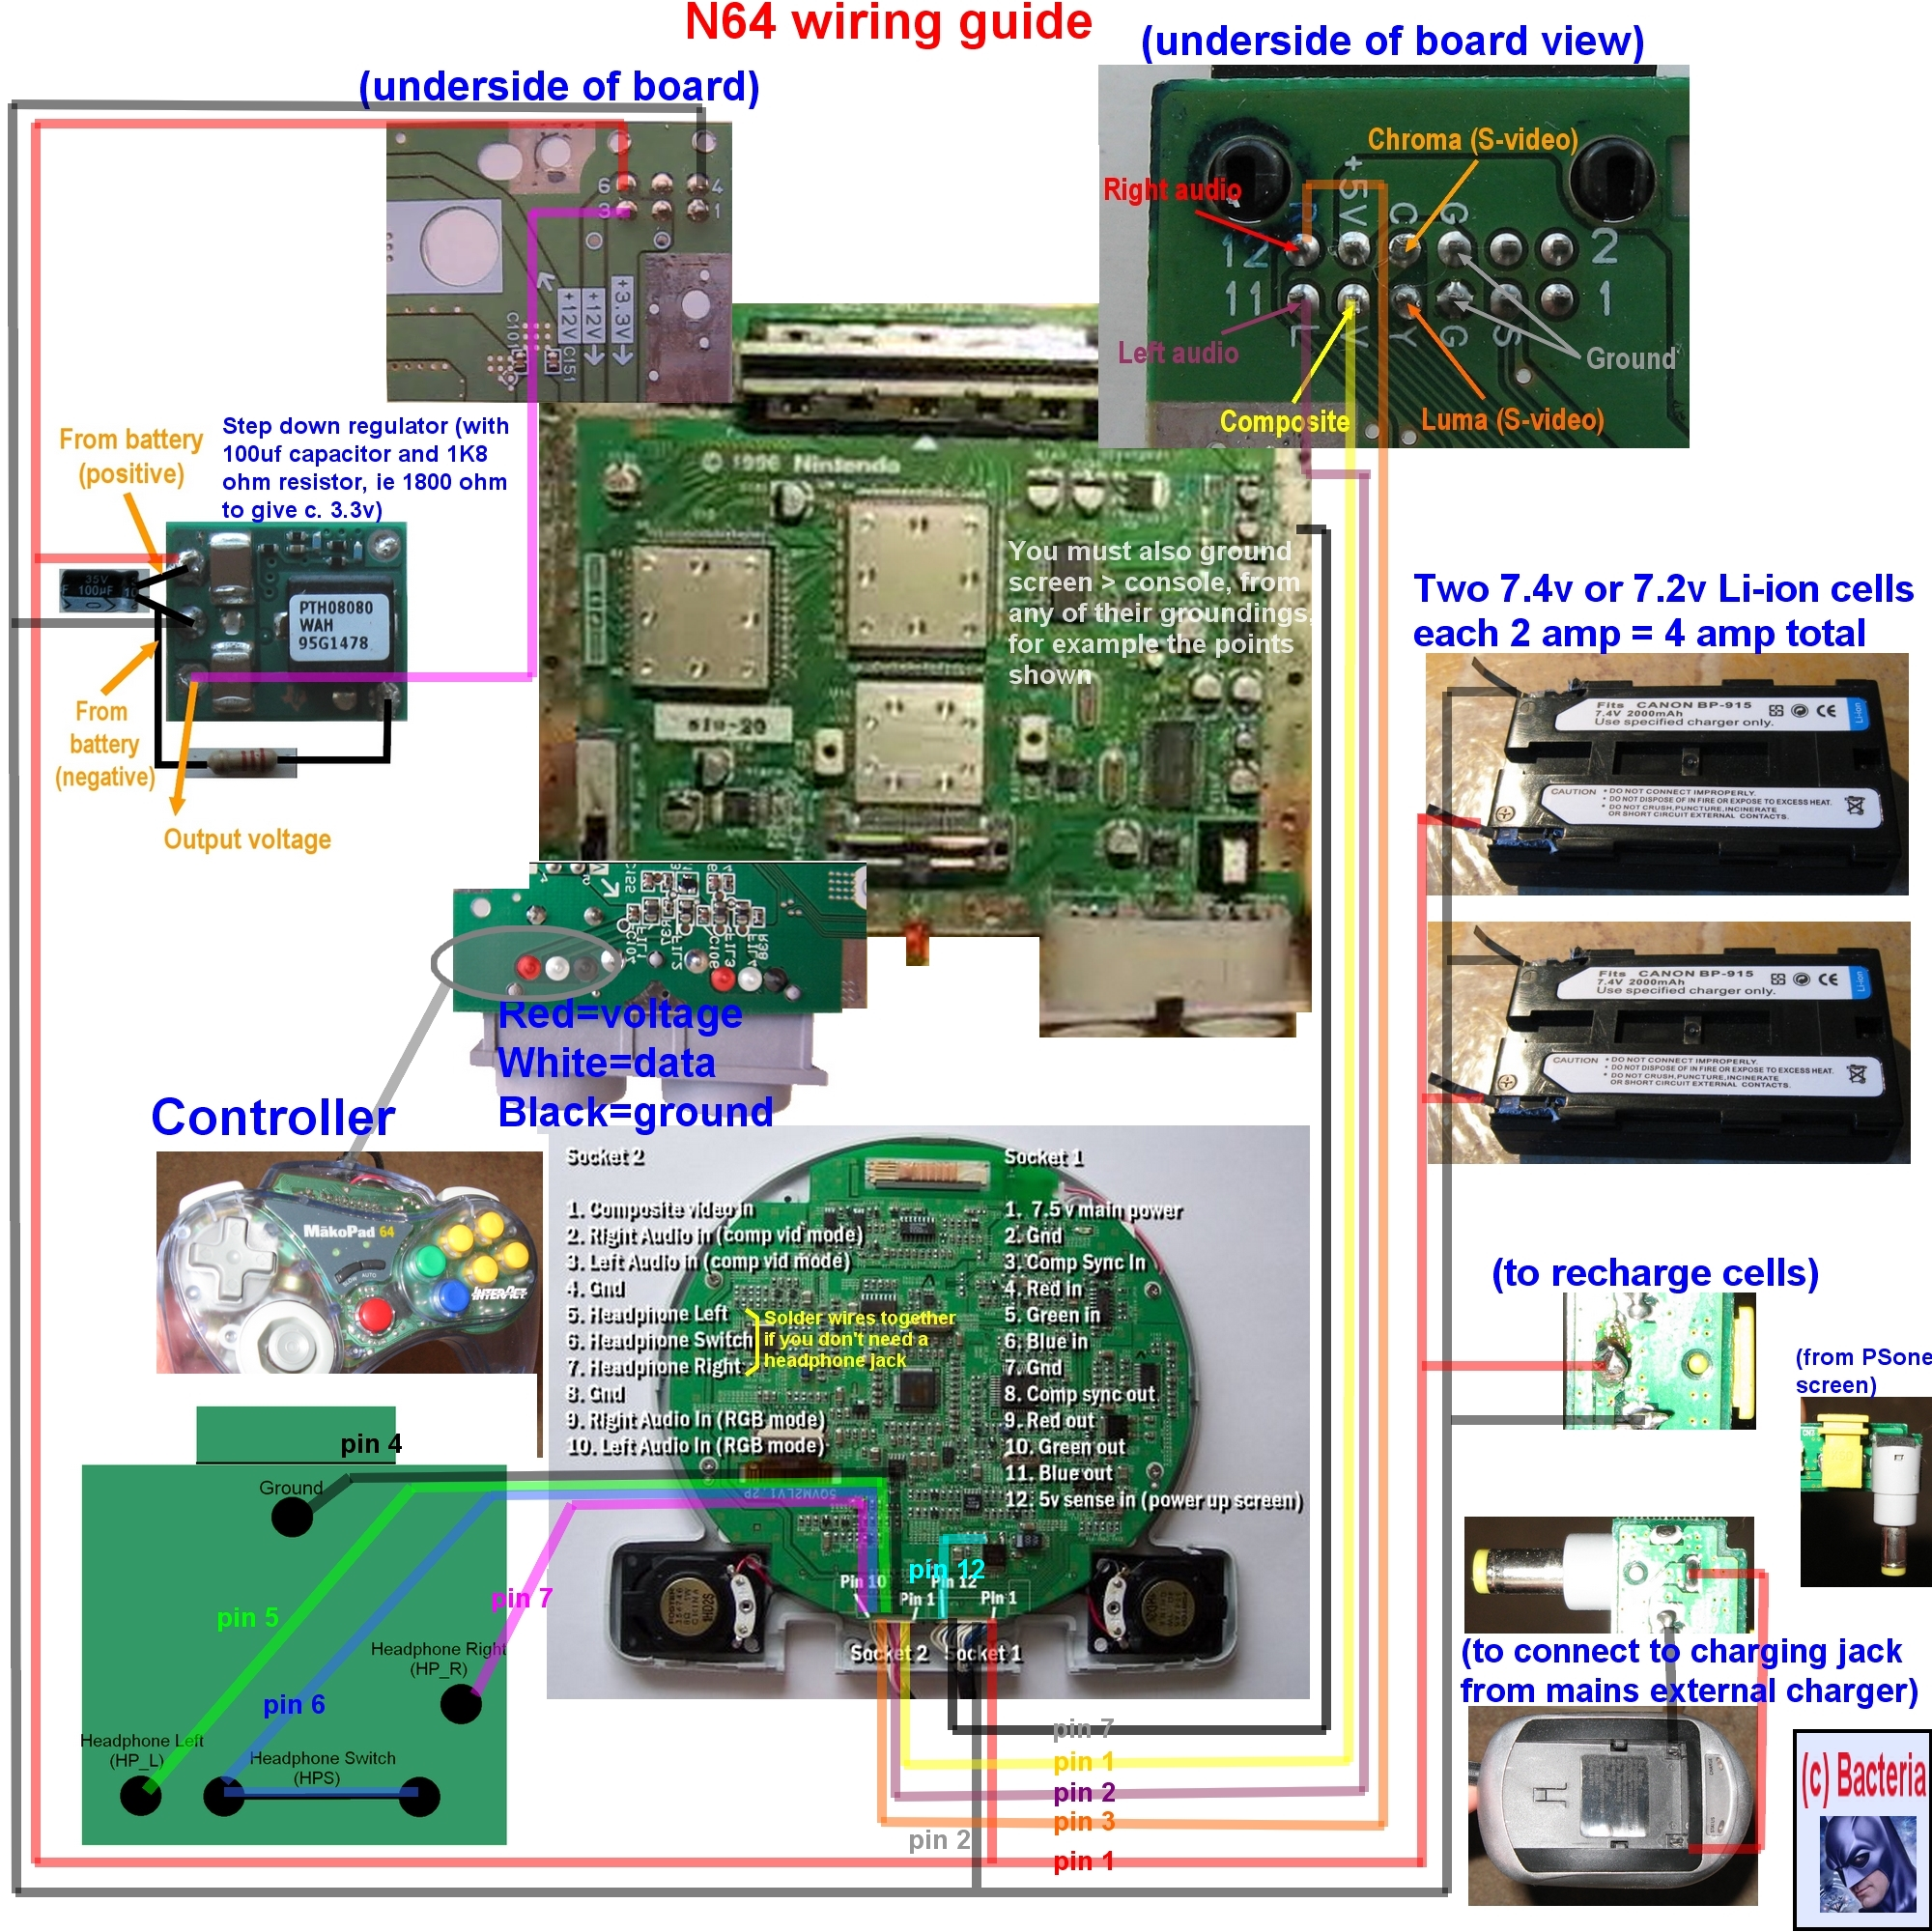 N64 Wiring Diagram Data Saturn Schematic Racketboy Com U2022 View Topic Complete To Make